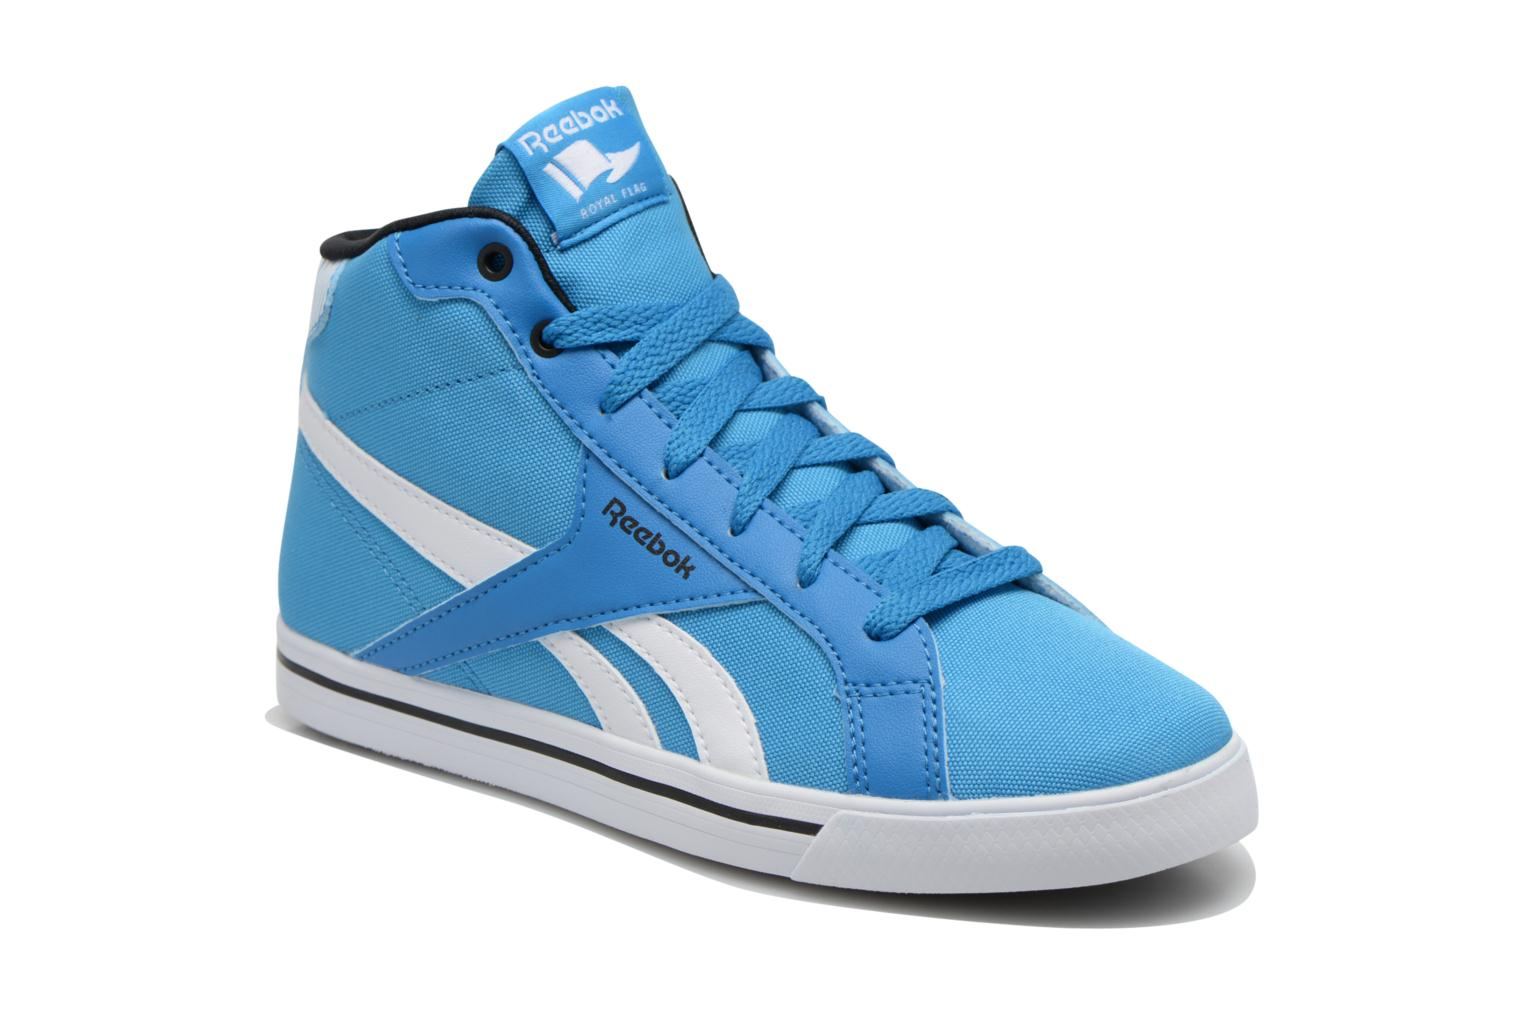 Baskets Reebok Reebok Royal Comp Mid Cvs Bleu vue détail/paire